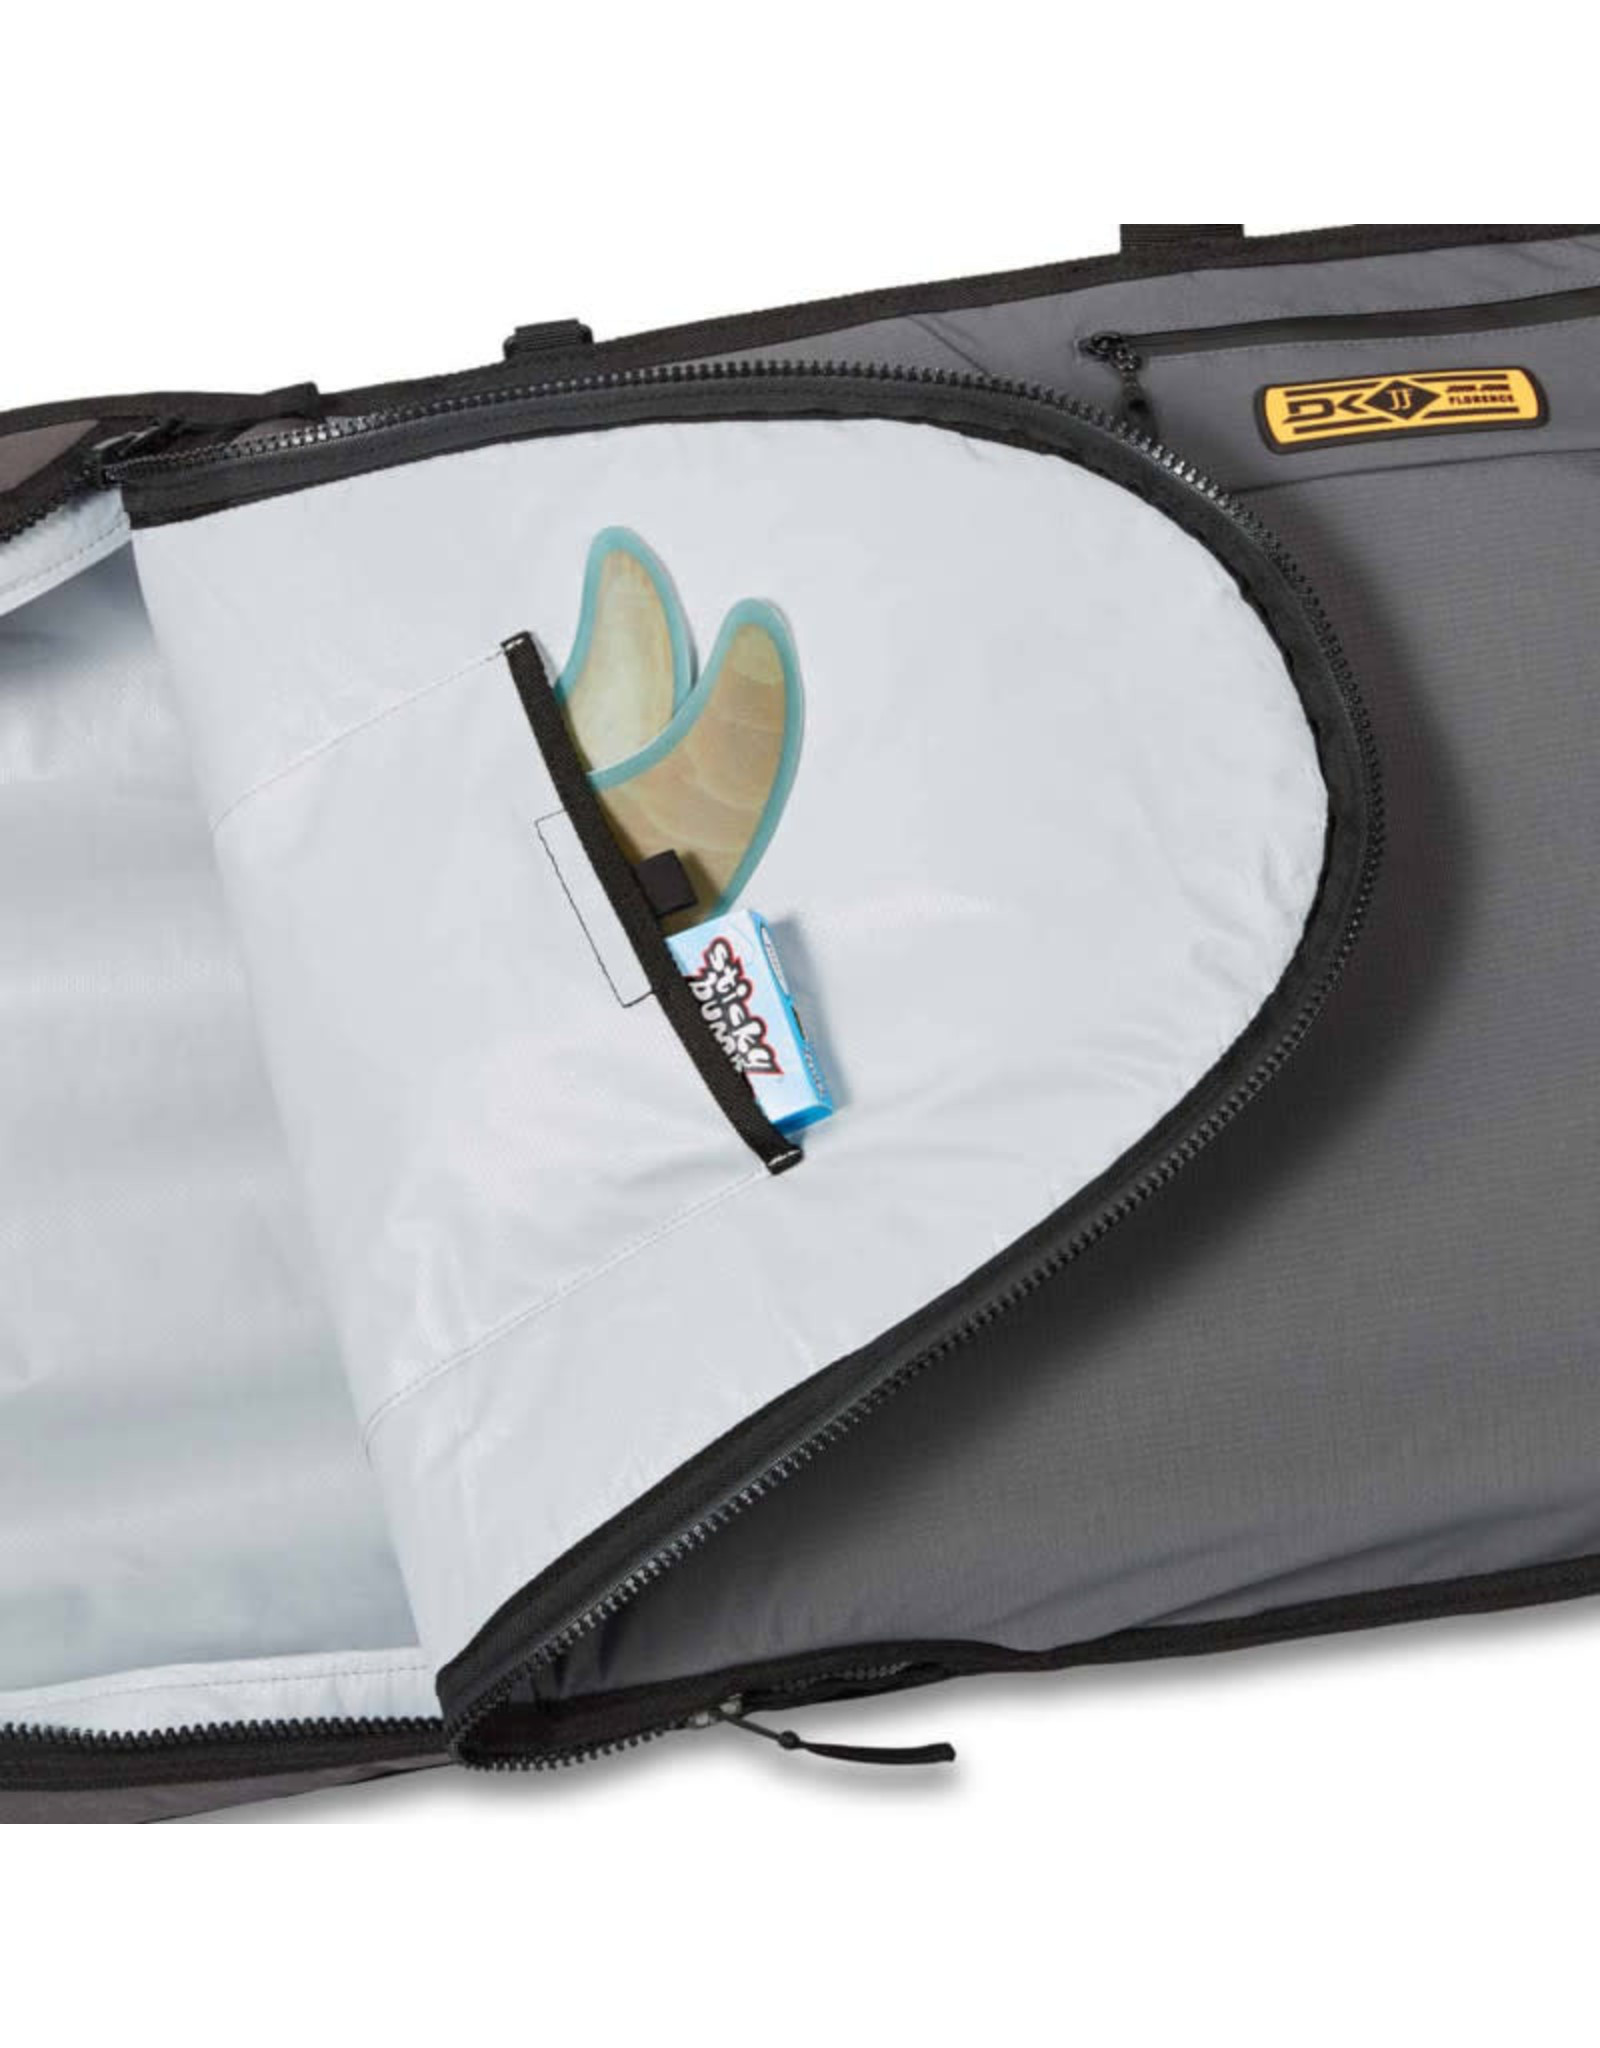 Dakine Dakine 5'8'' John John Florence Mission Surfboard Bag Surf Boardbag Carbon